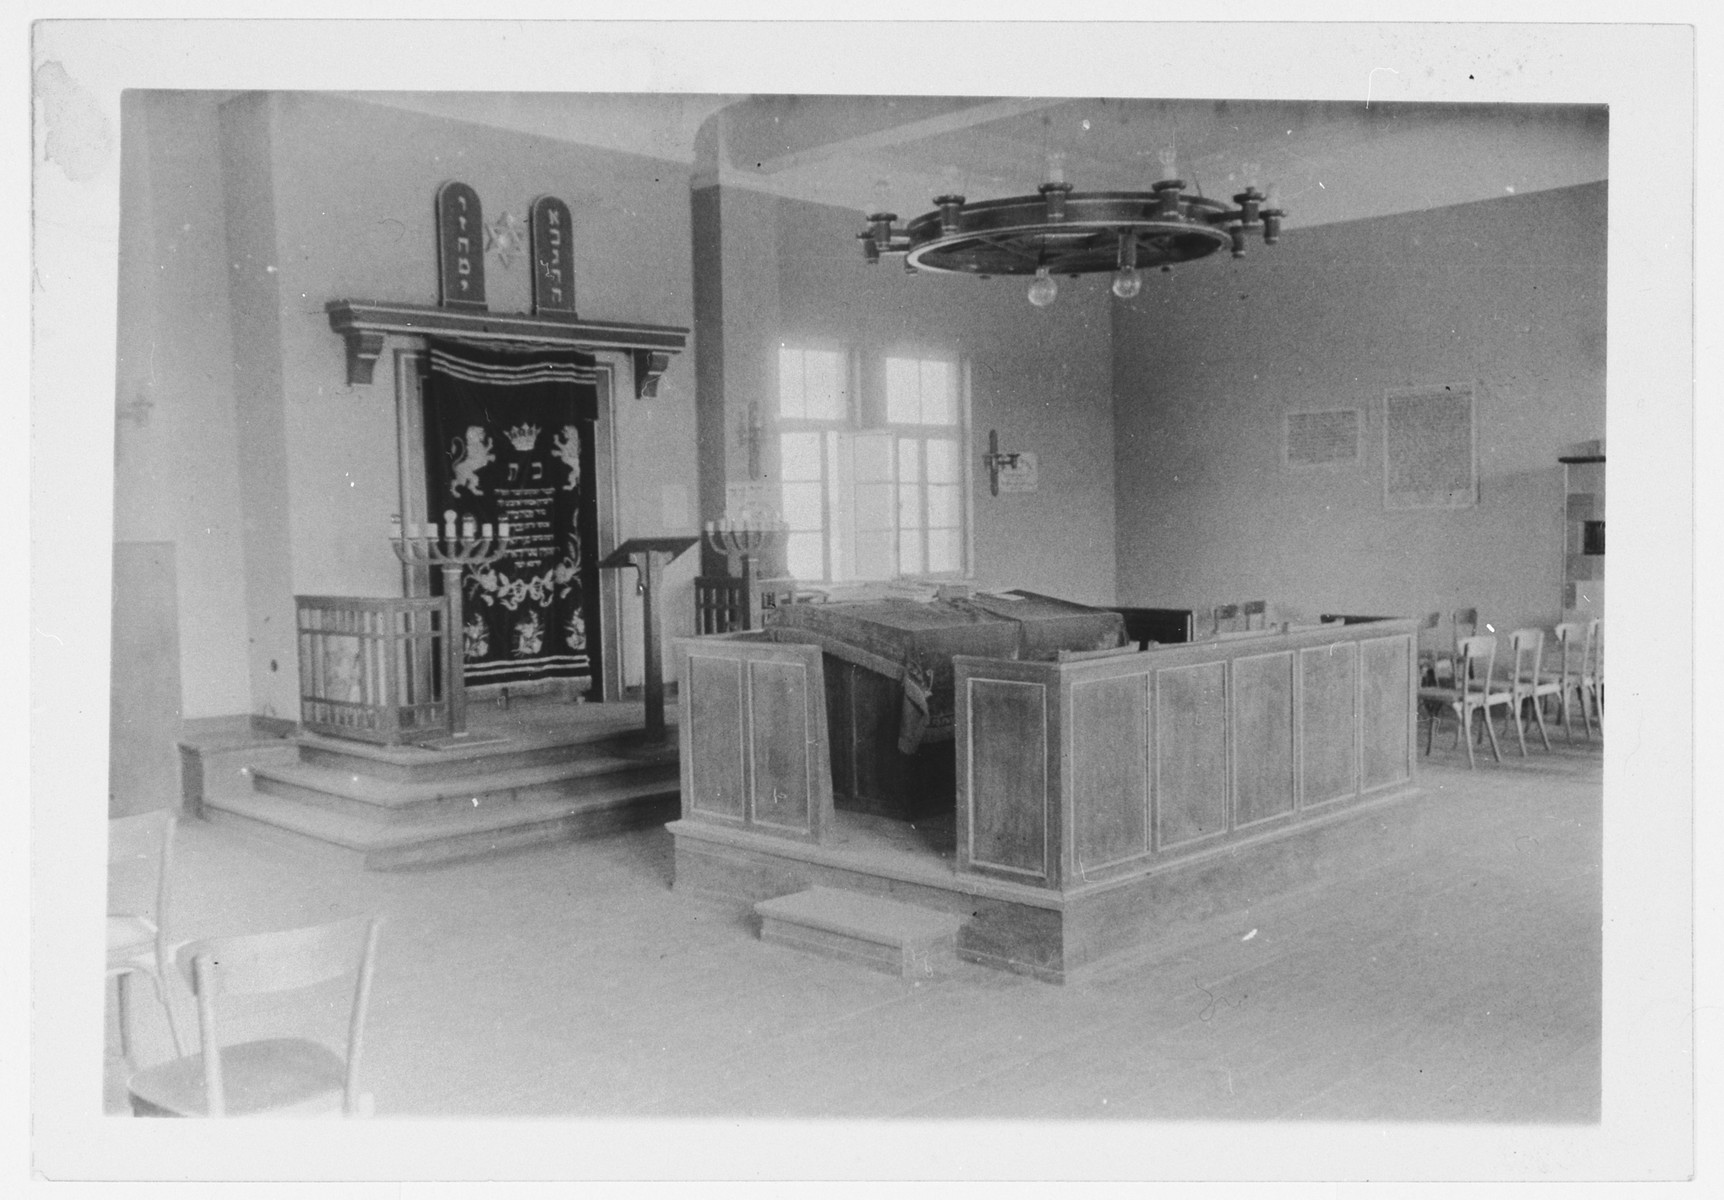 View of the interior of the synagogue in the Zeilsheim DP camp.